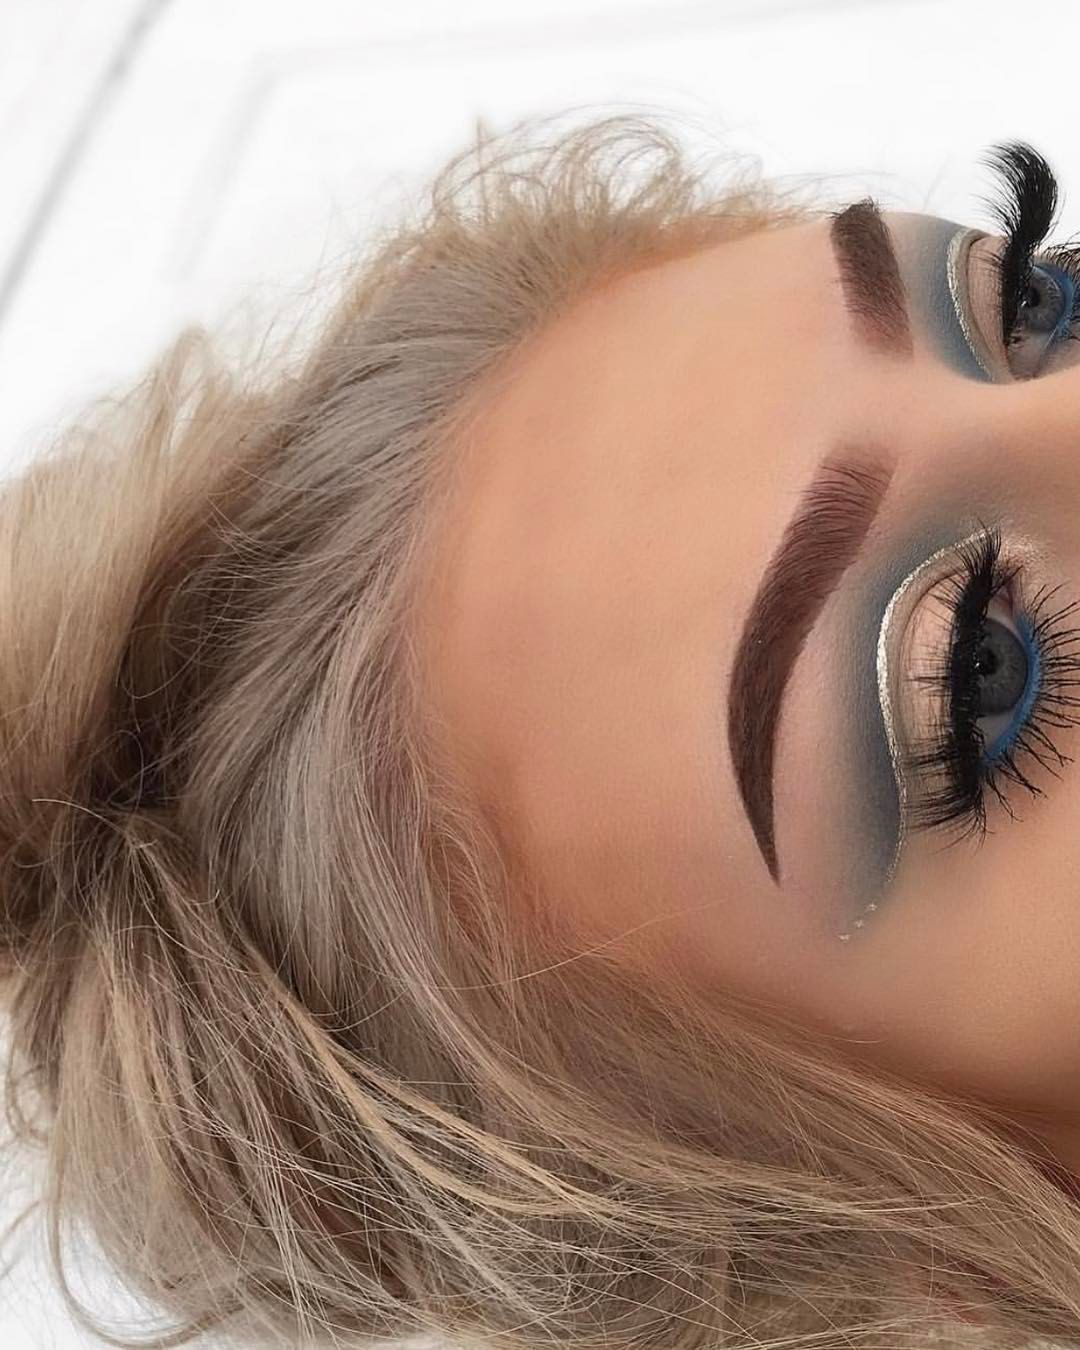 Creative Eyeshadow Glittery Outline And Blue Shades